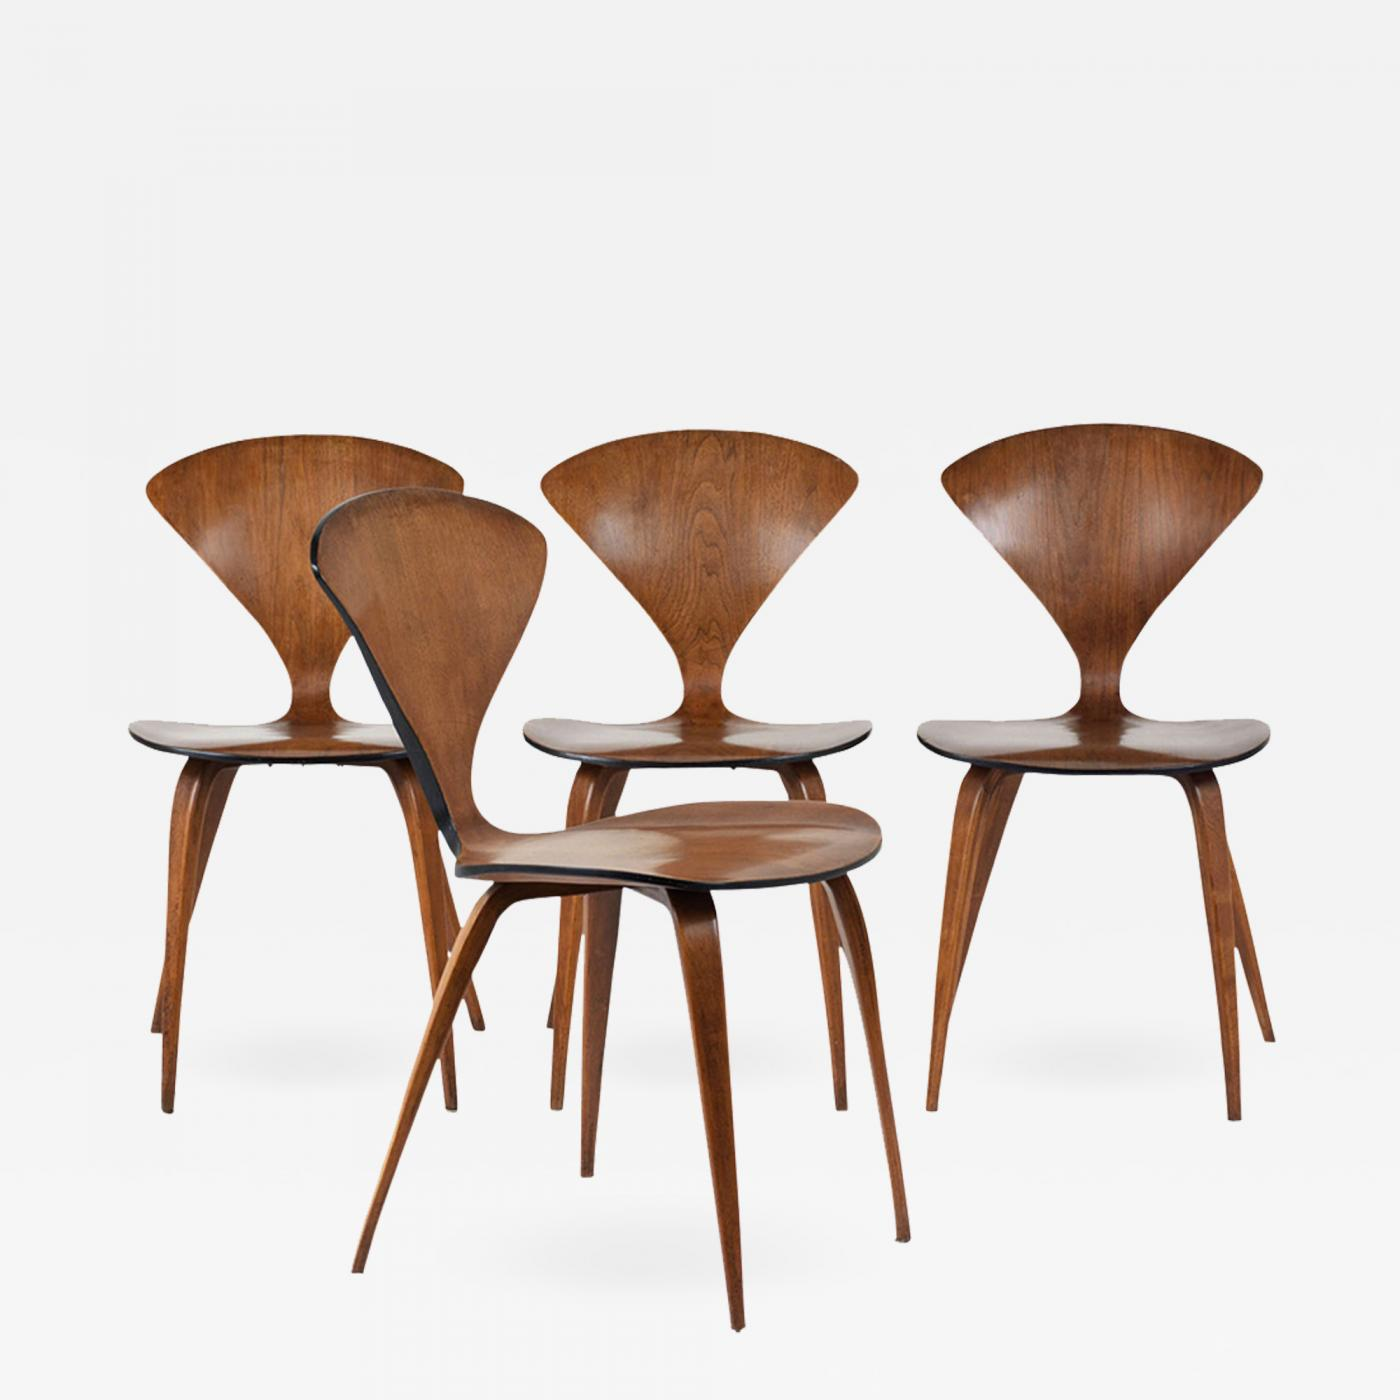 Delicieux Listings / Furniture / Seating / Dining Chairs